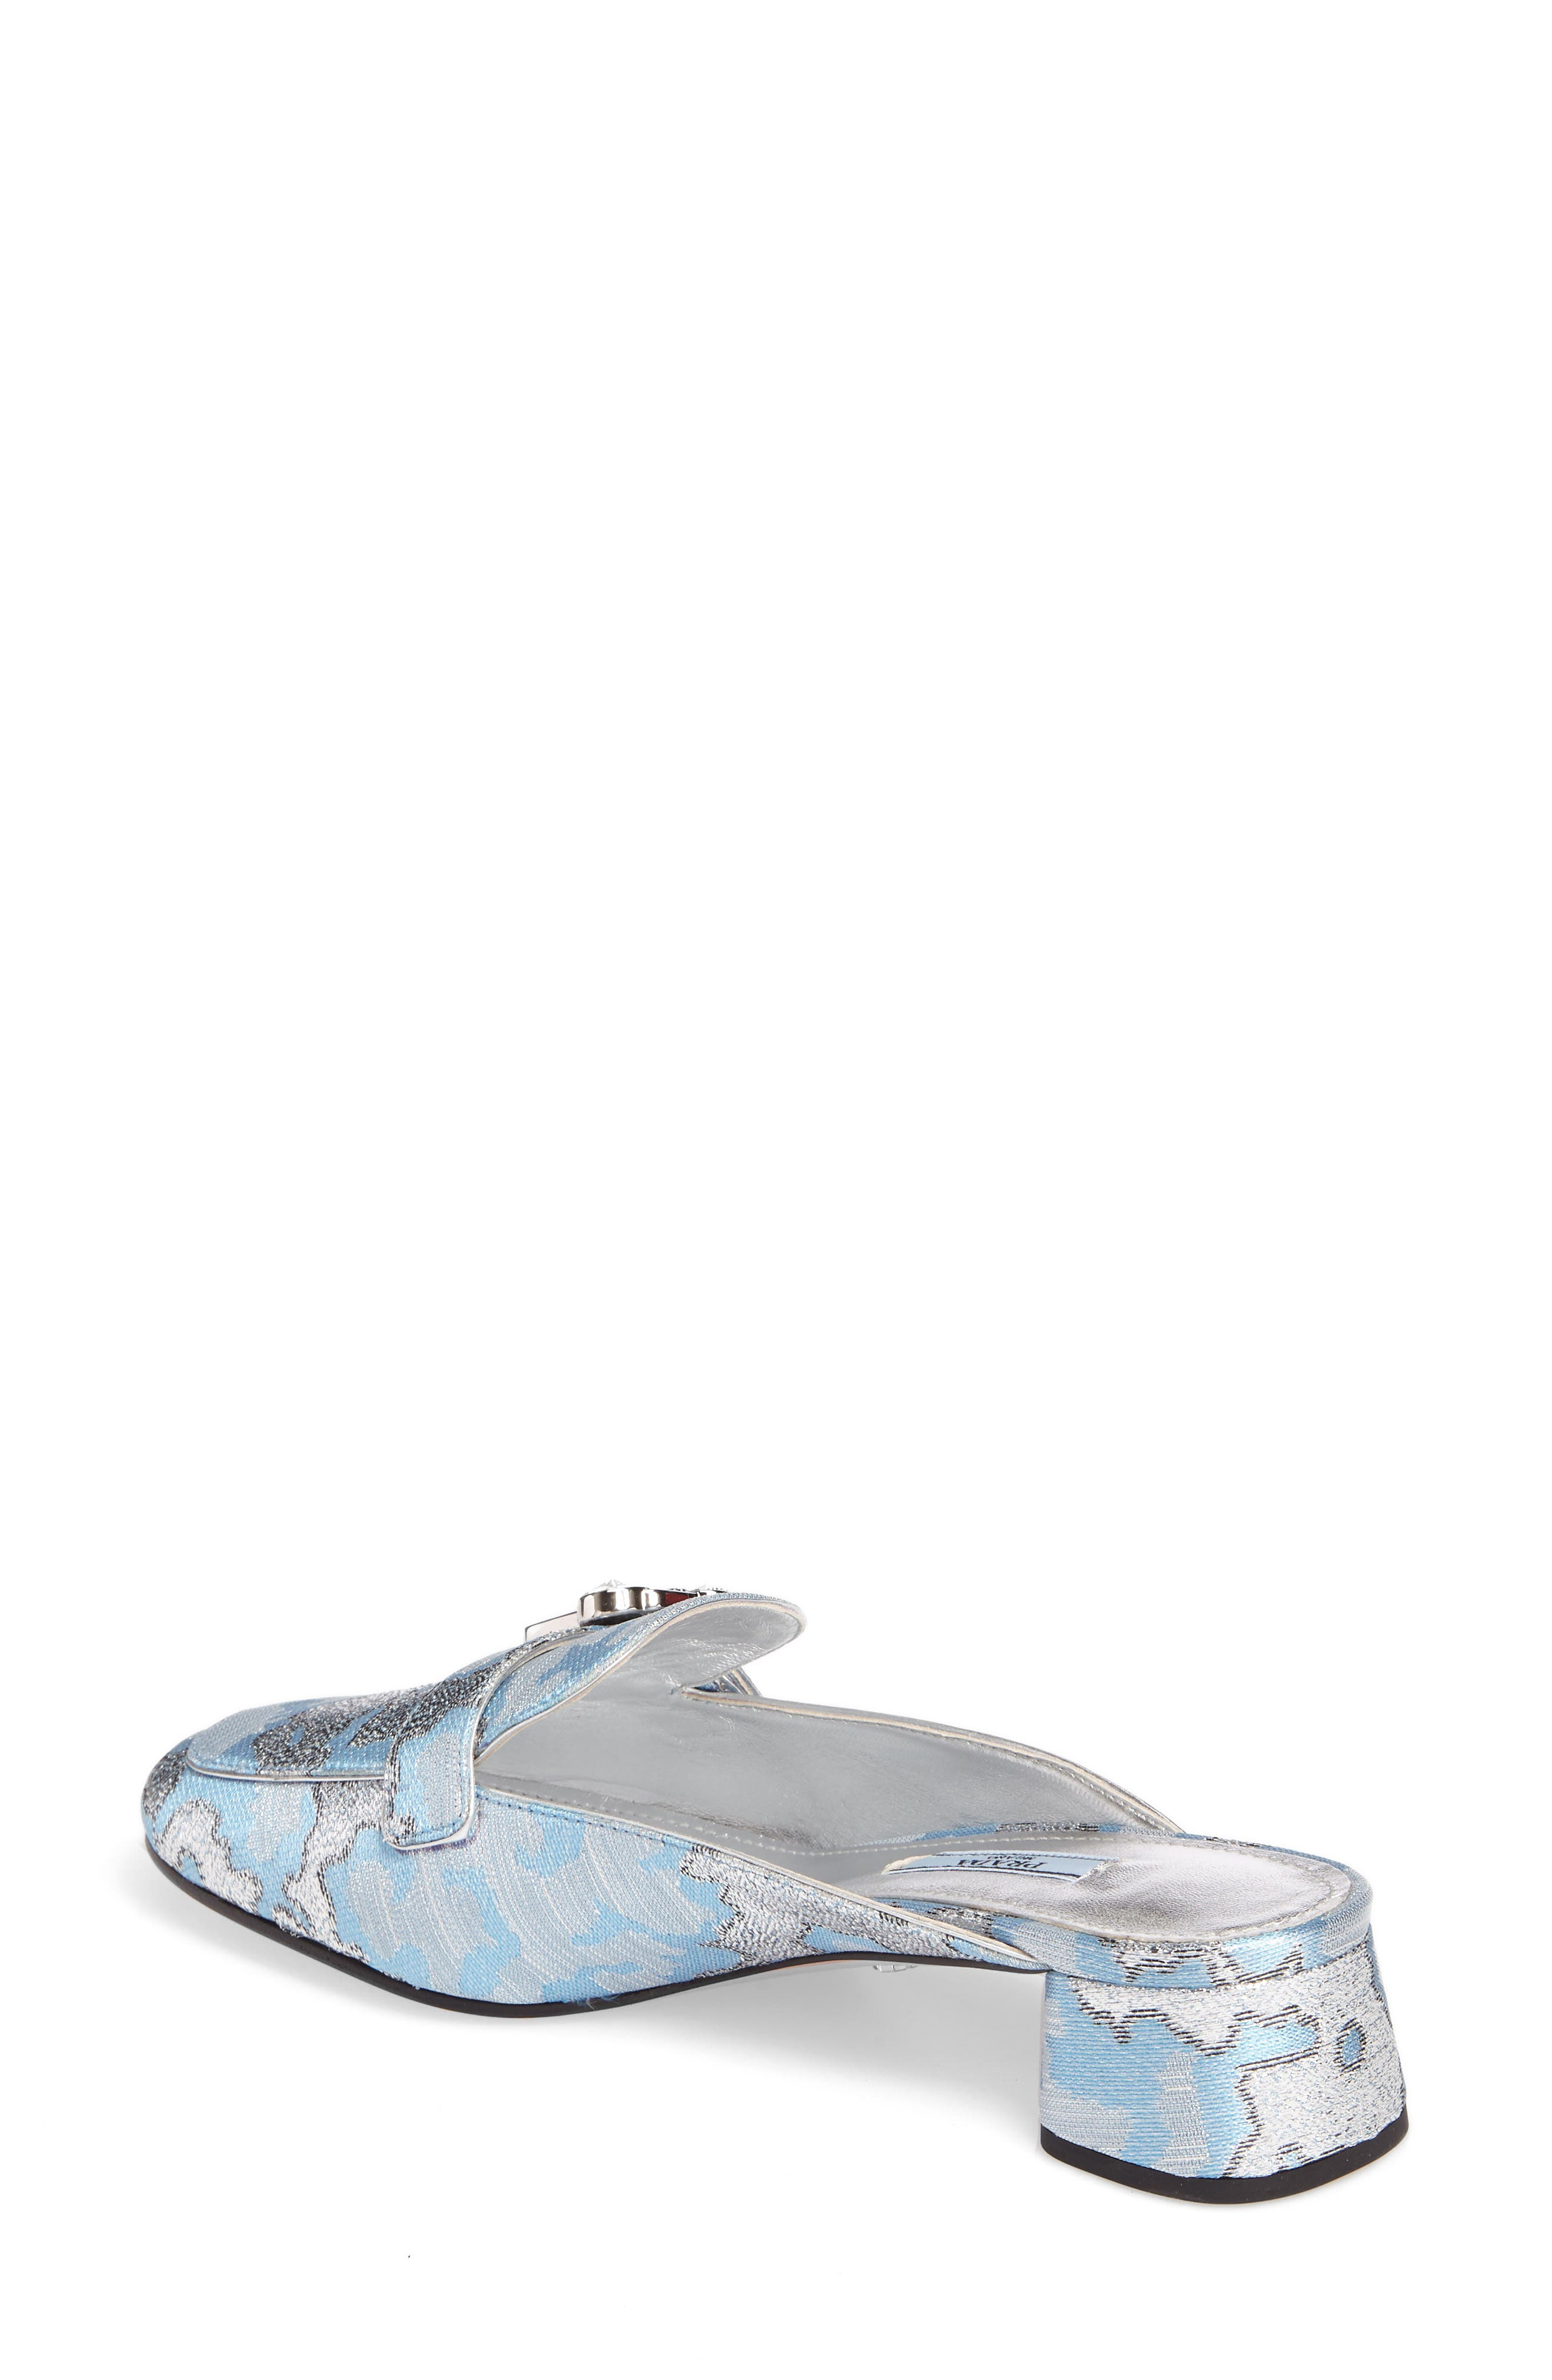 Crystal Buckle Loafer Mule,                             Alternate thumbnail 2, color,                             425